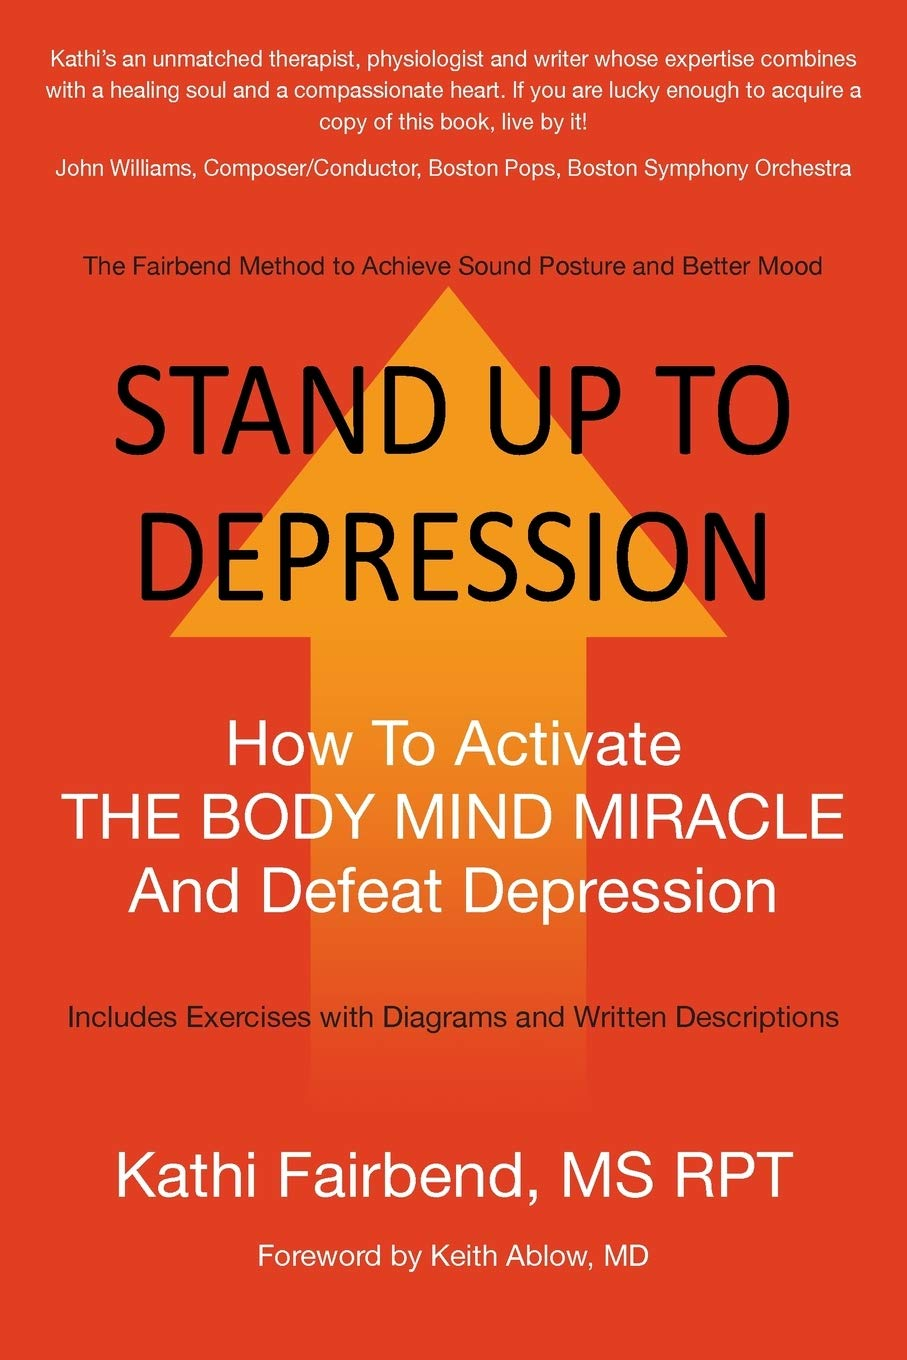 A NEW THEORY ABOUT DEPRESSION